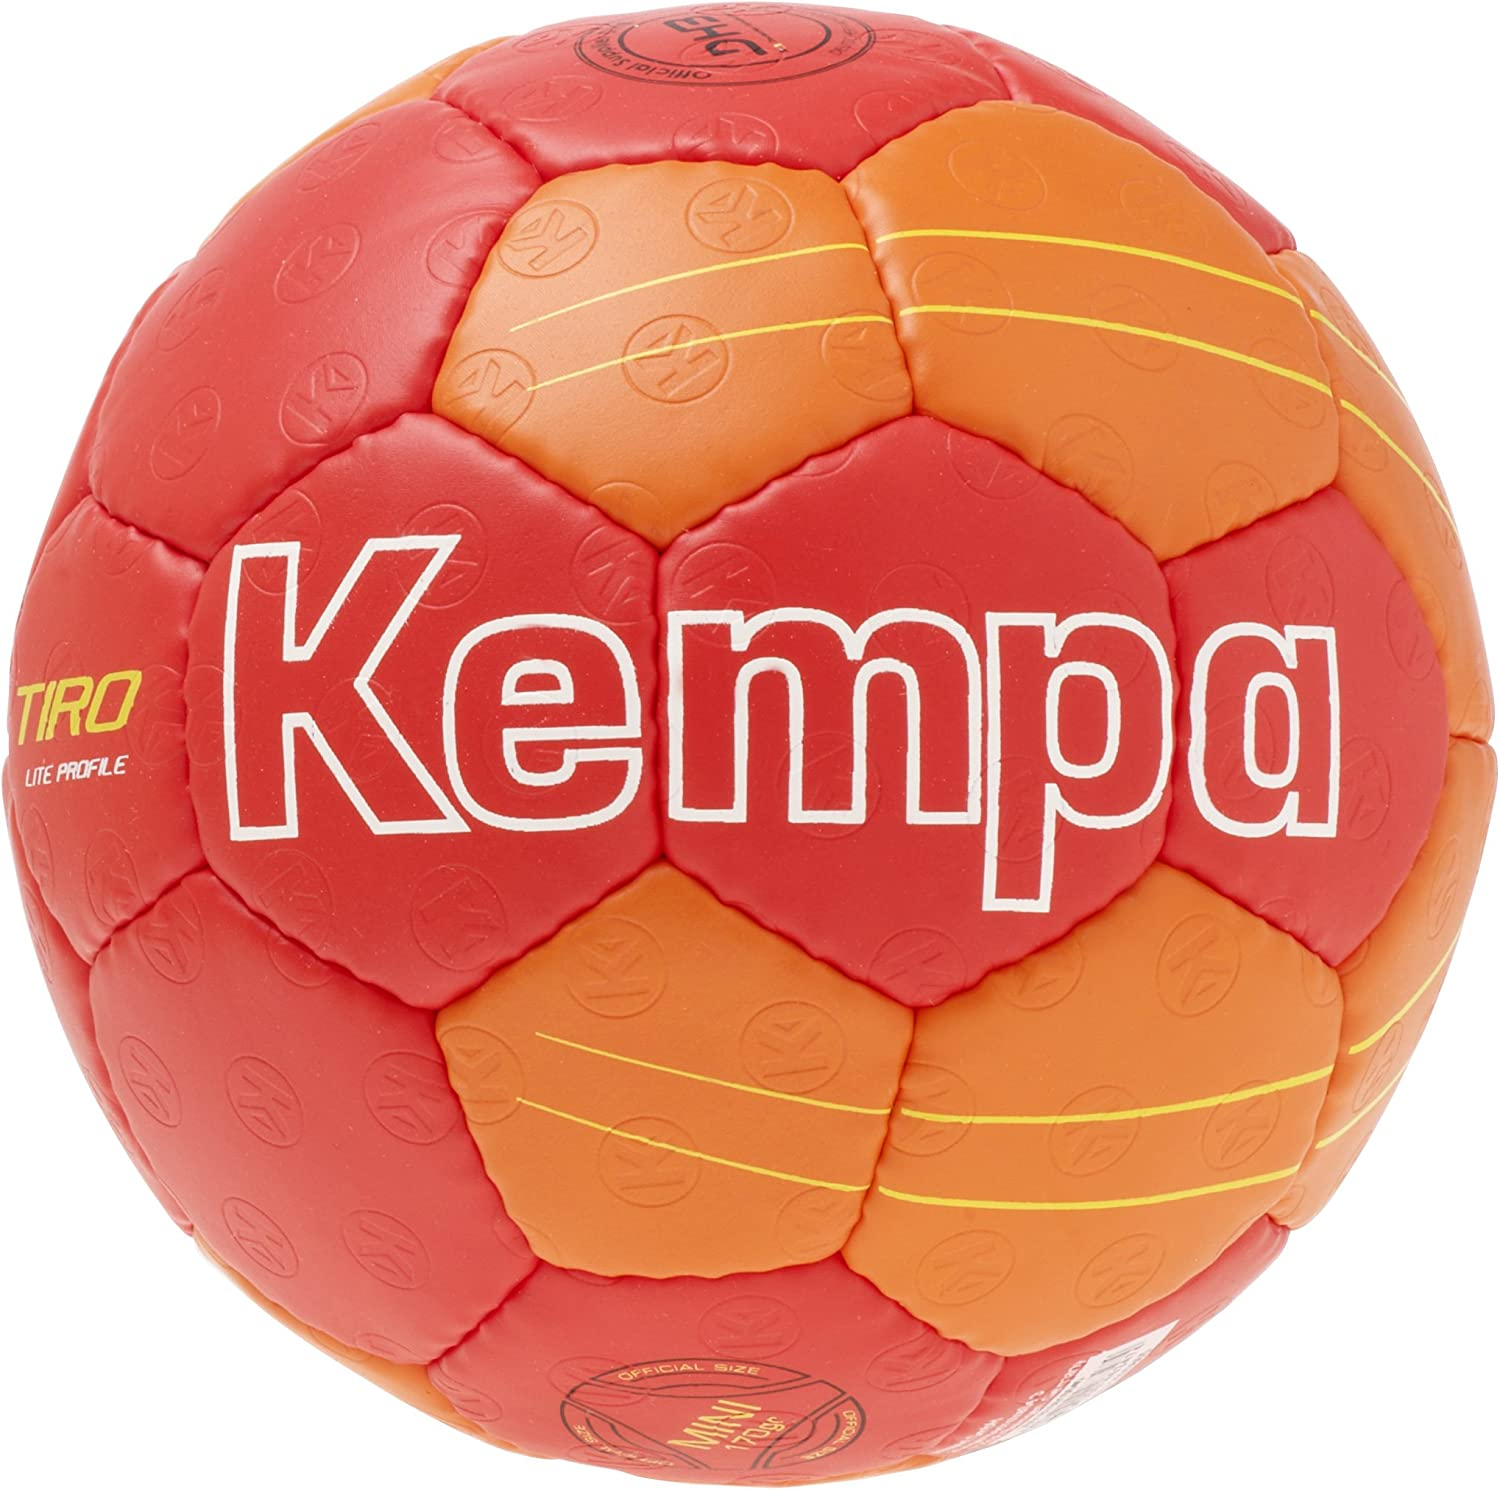 Kempa Ball Tiro Lite Profile, Unisex adulto: Amazon.es: Deportes y ...